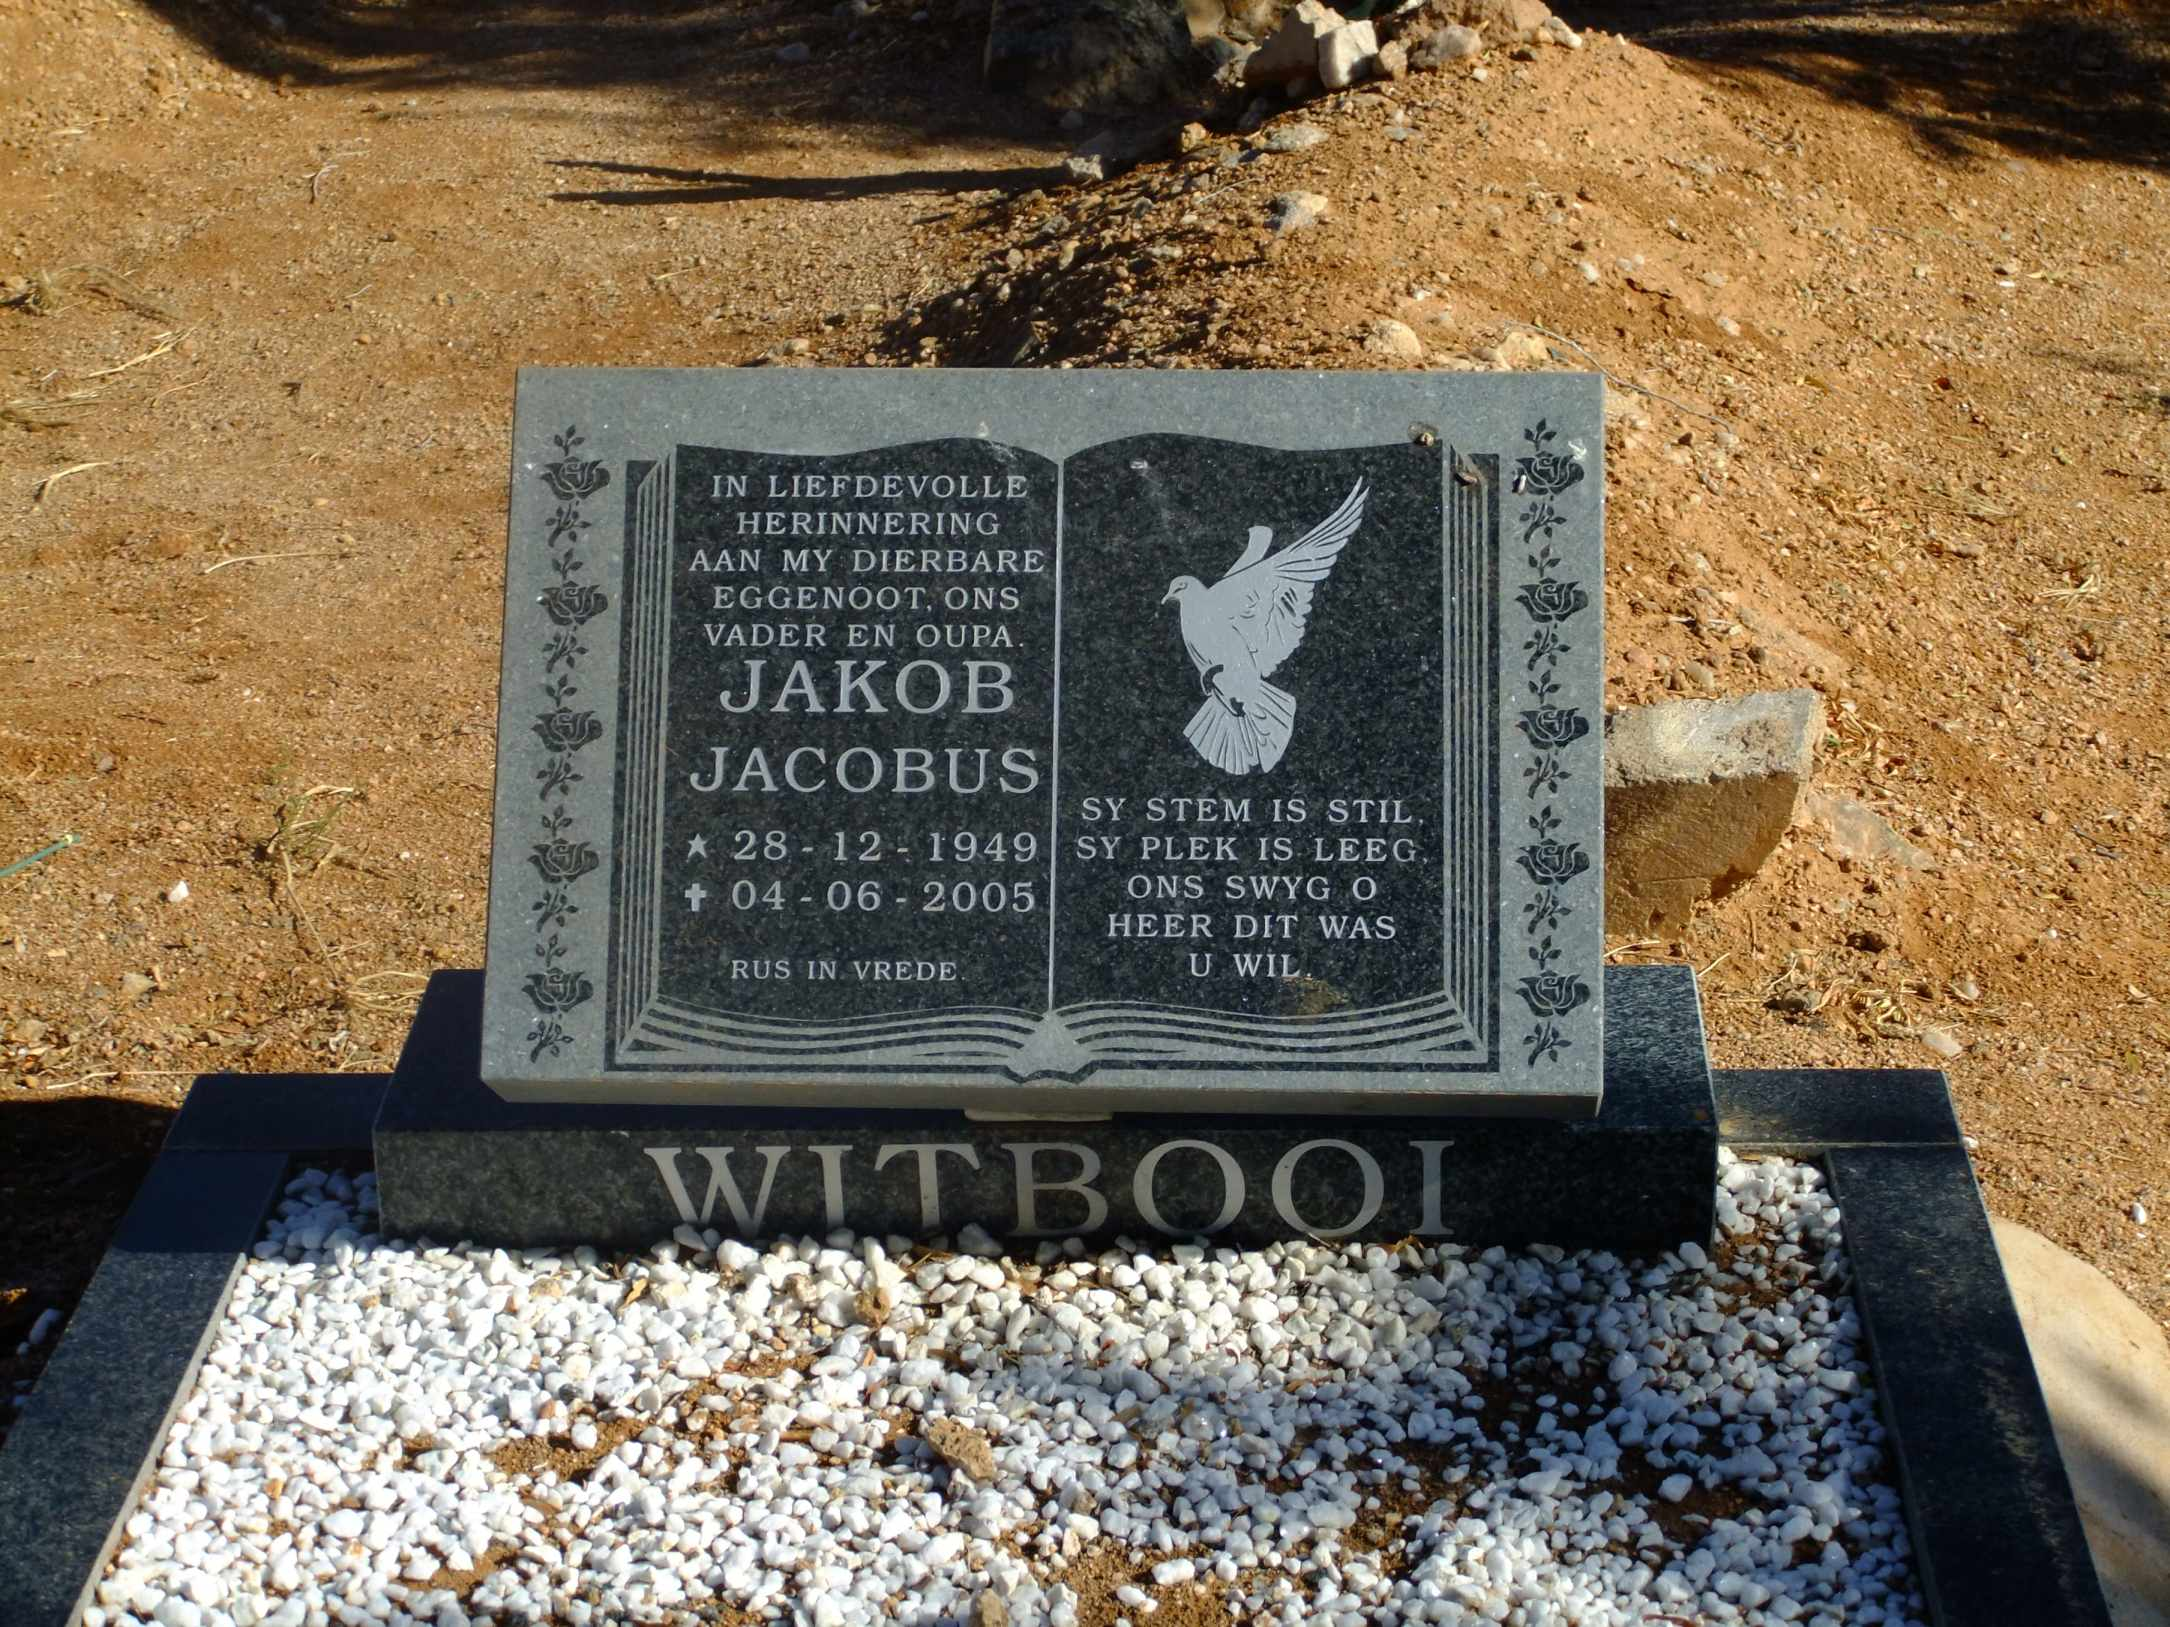 Witbooi, Jakob Jakobus boen 28 December 1949 died 04 June 2005